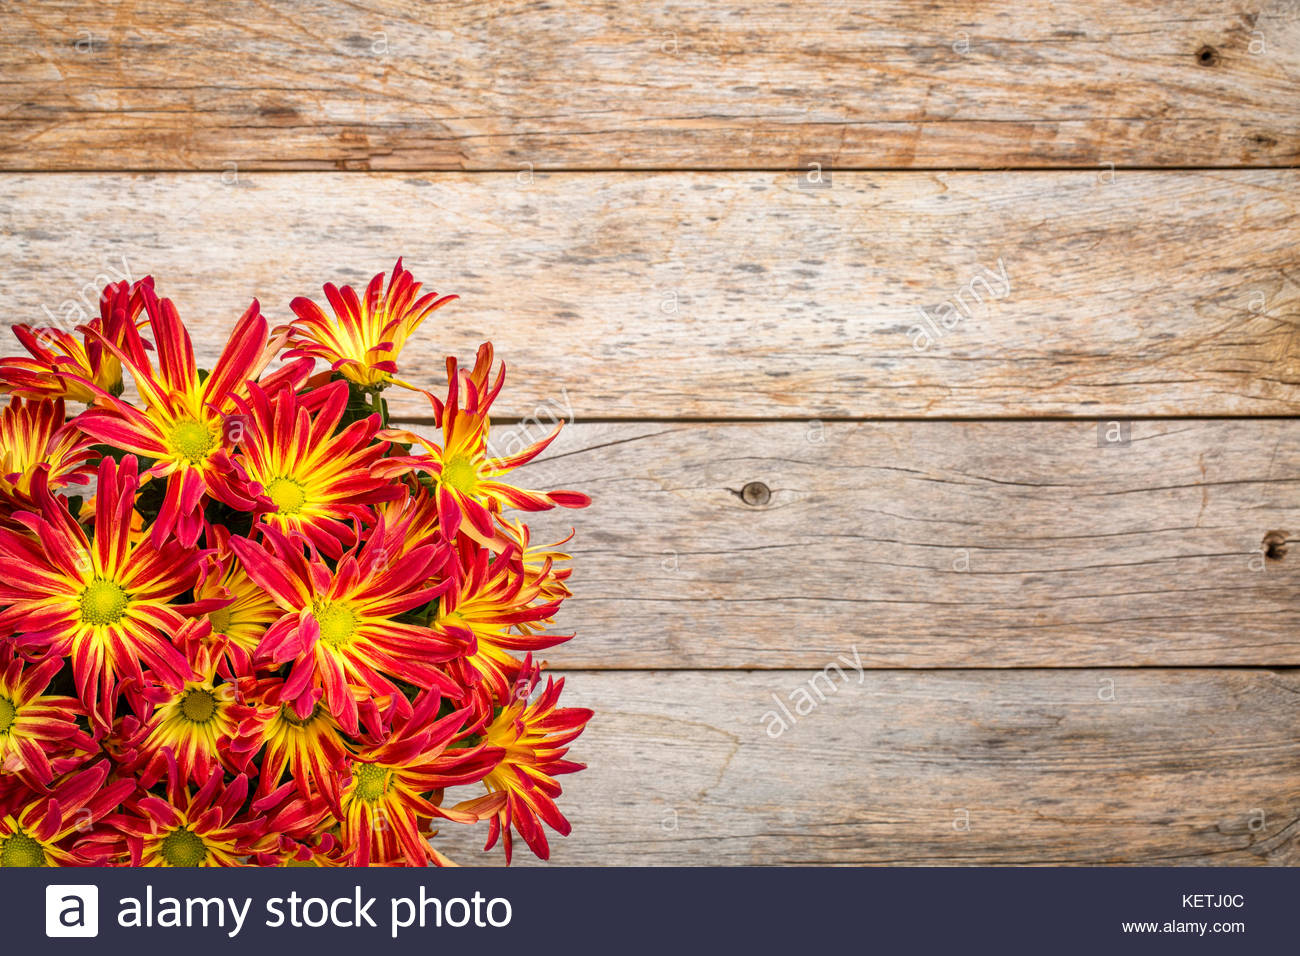 rustic barn wood background with a bouquet of fall mums and copy 1300x956